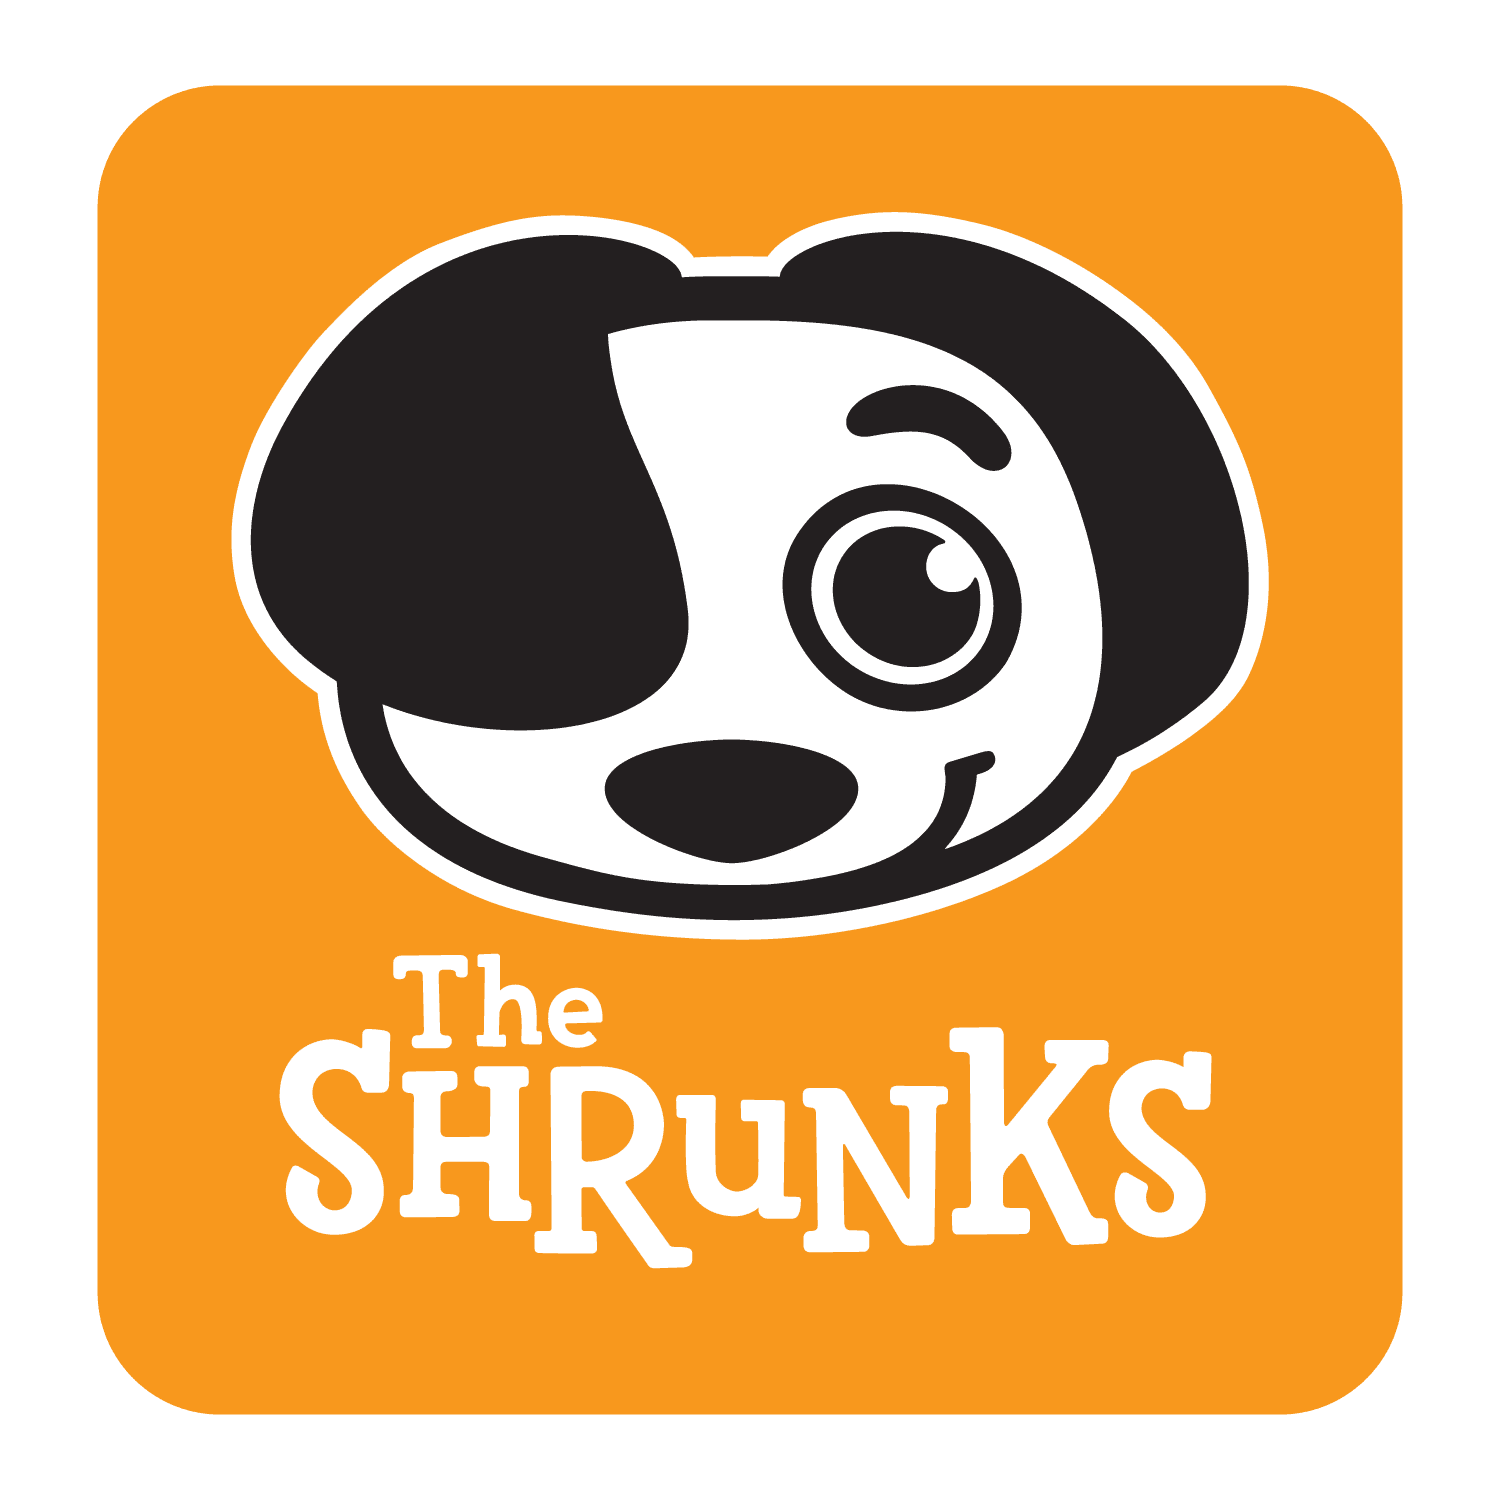 THE SHRUNKS